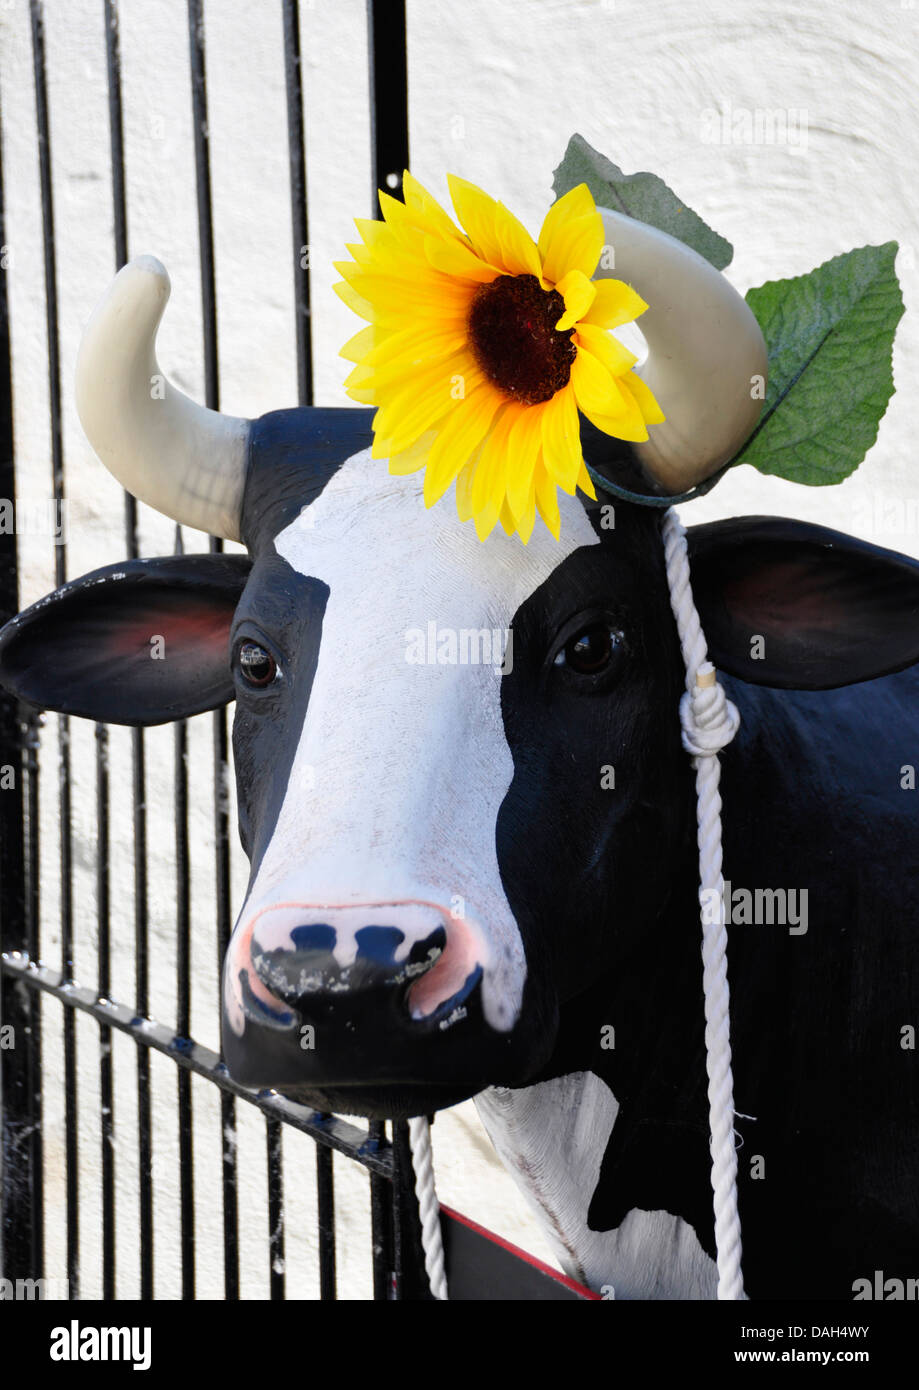 Oxon - Thame - in the Buttermarket - life size model of a black and white cow - with a flower behind her ear - Stock Image